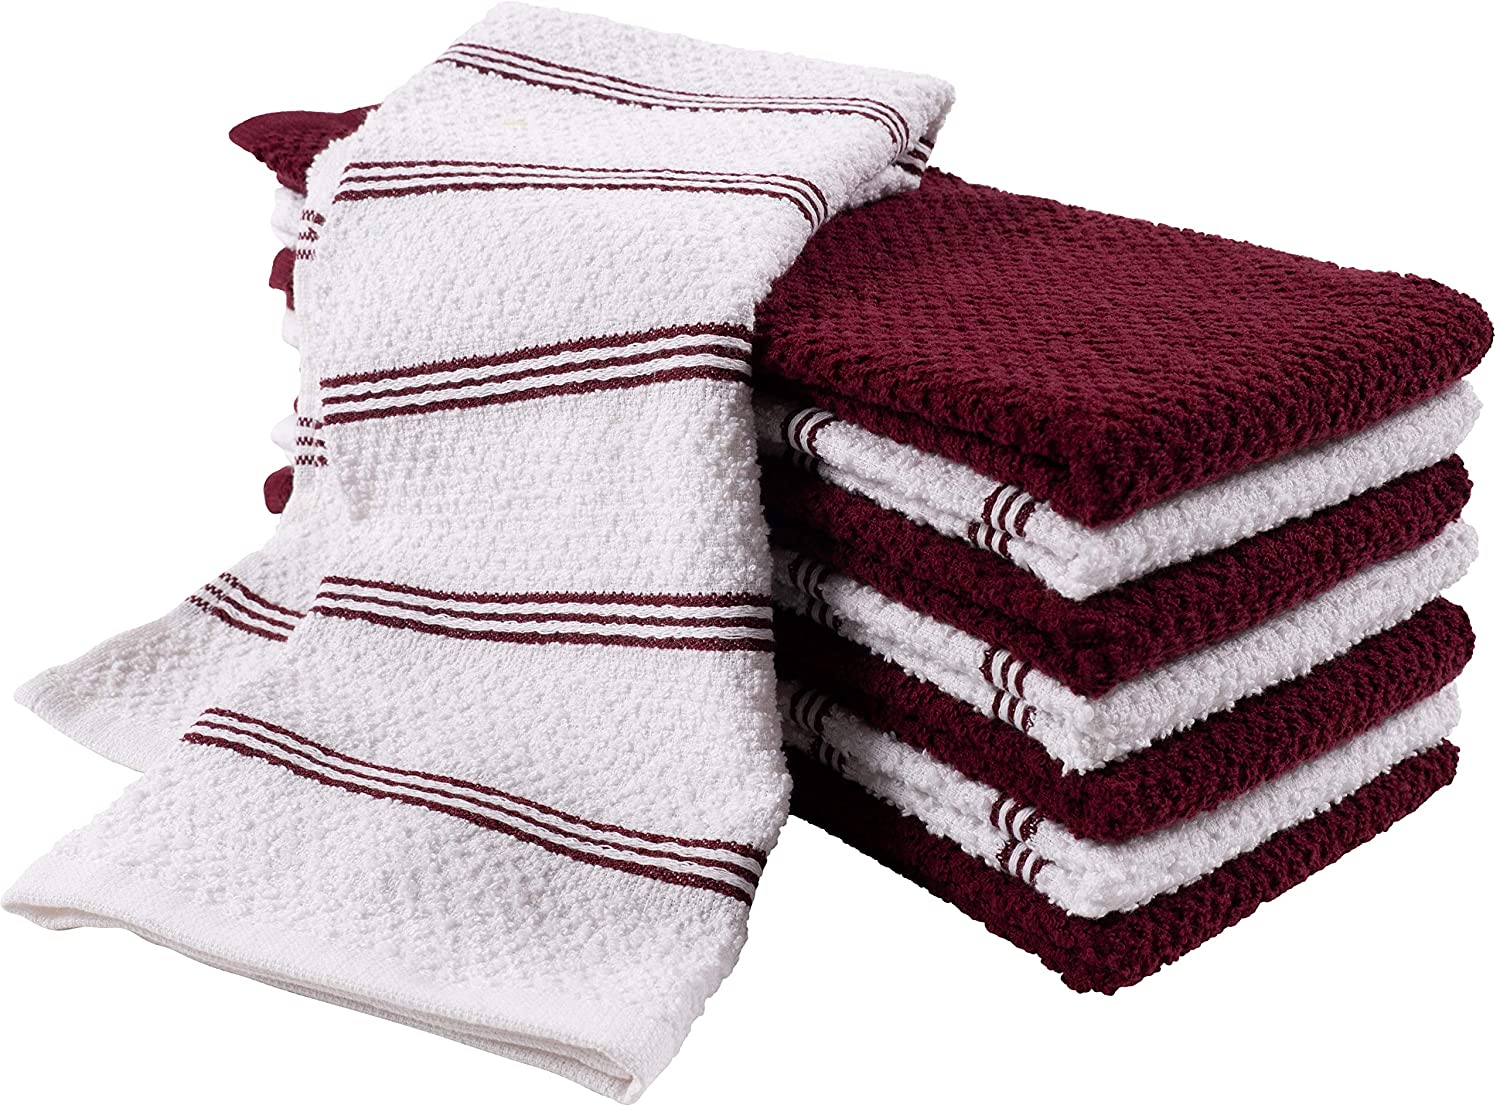 KAF Home Pantry Piedmont Kitchen Towels (Two Sets of 4, 16x26 inches), Absorbent Cotton Terry Towels - Wine Red